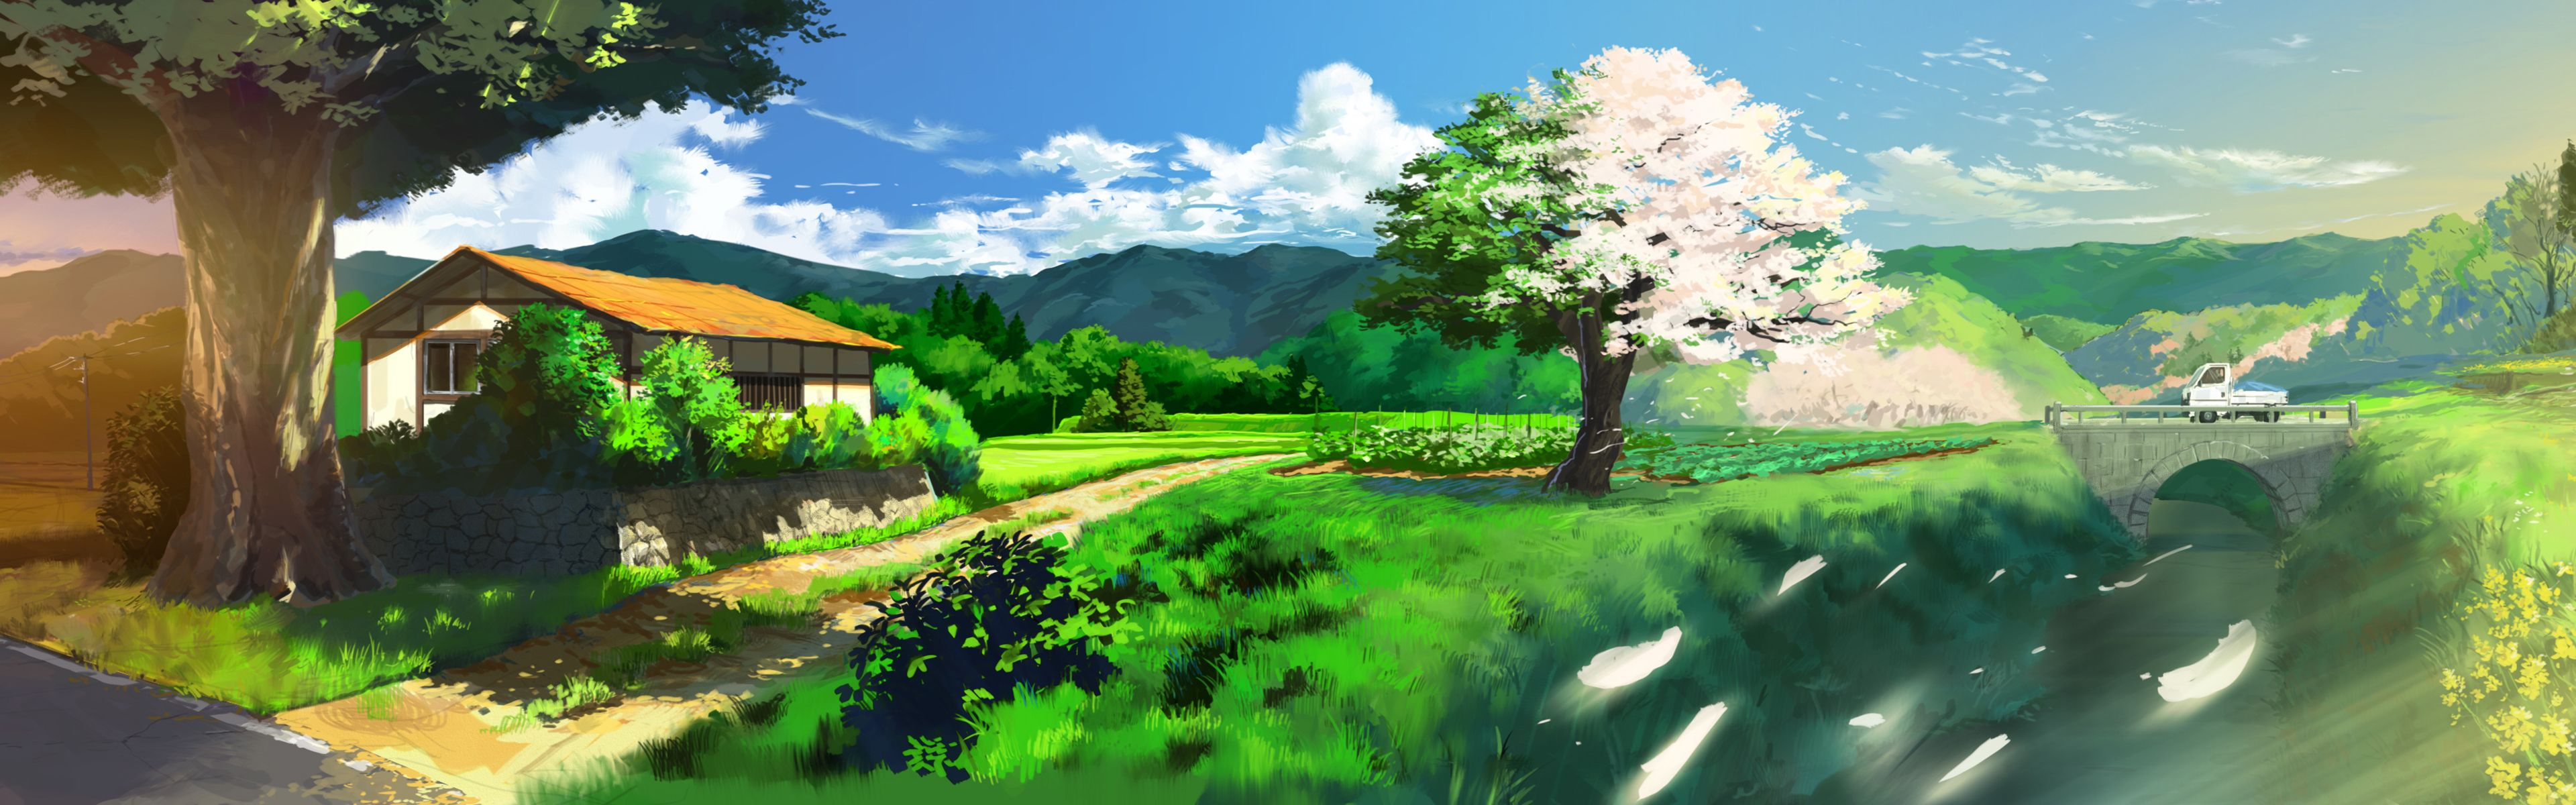 Nature Anime Scenery Background Wallpaper | Resources ...